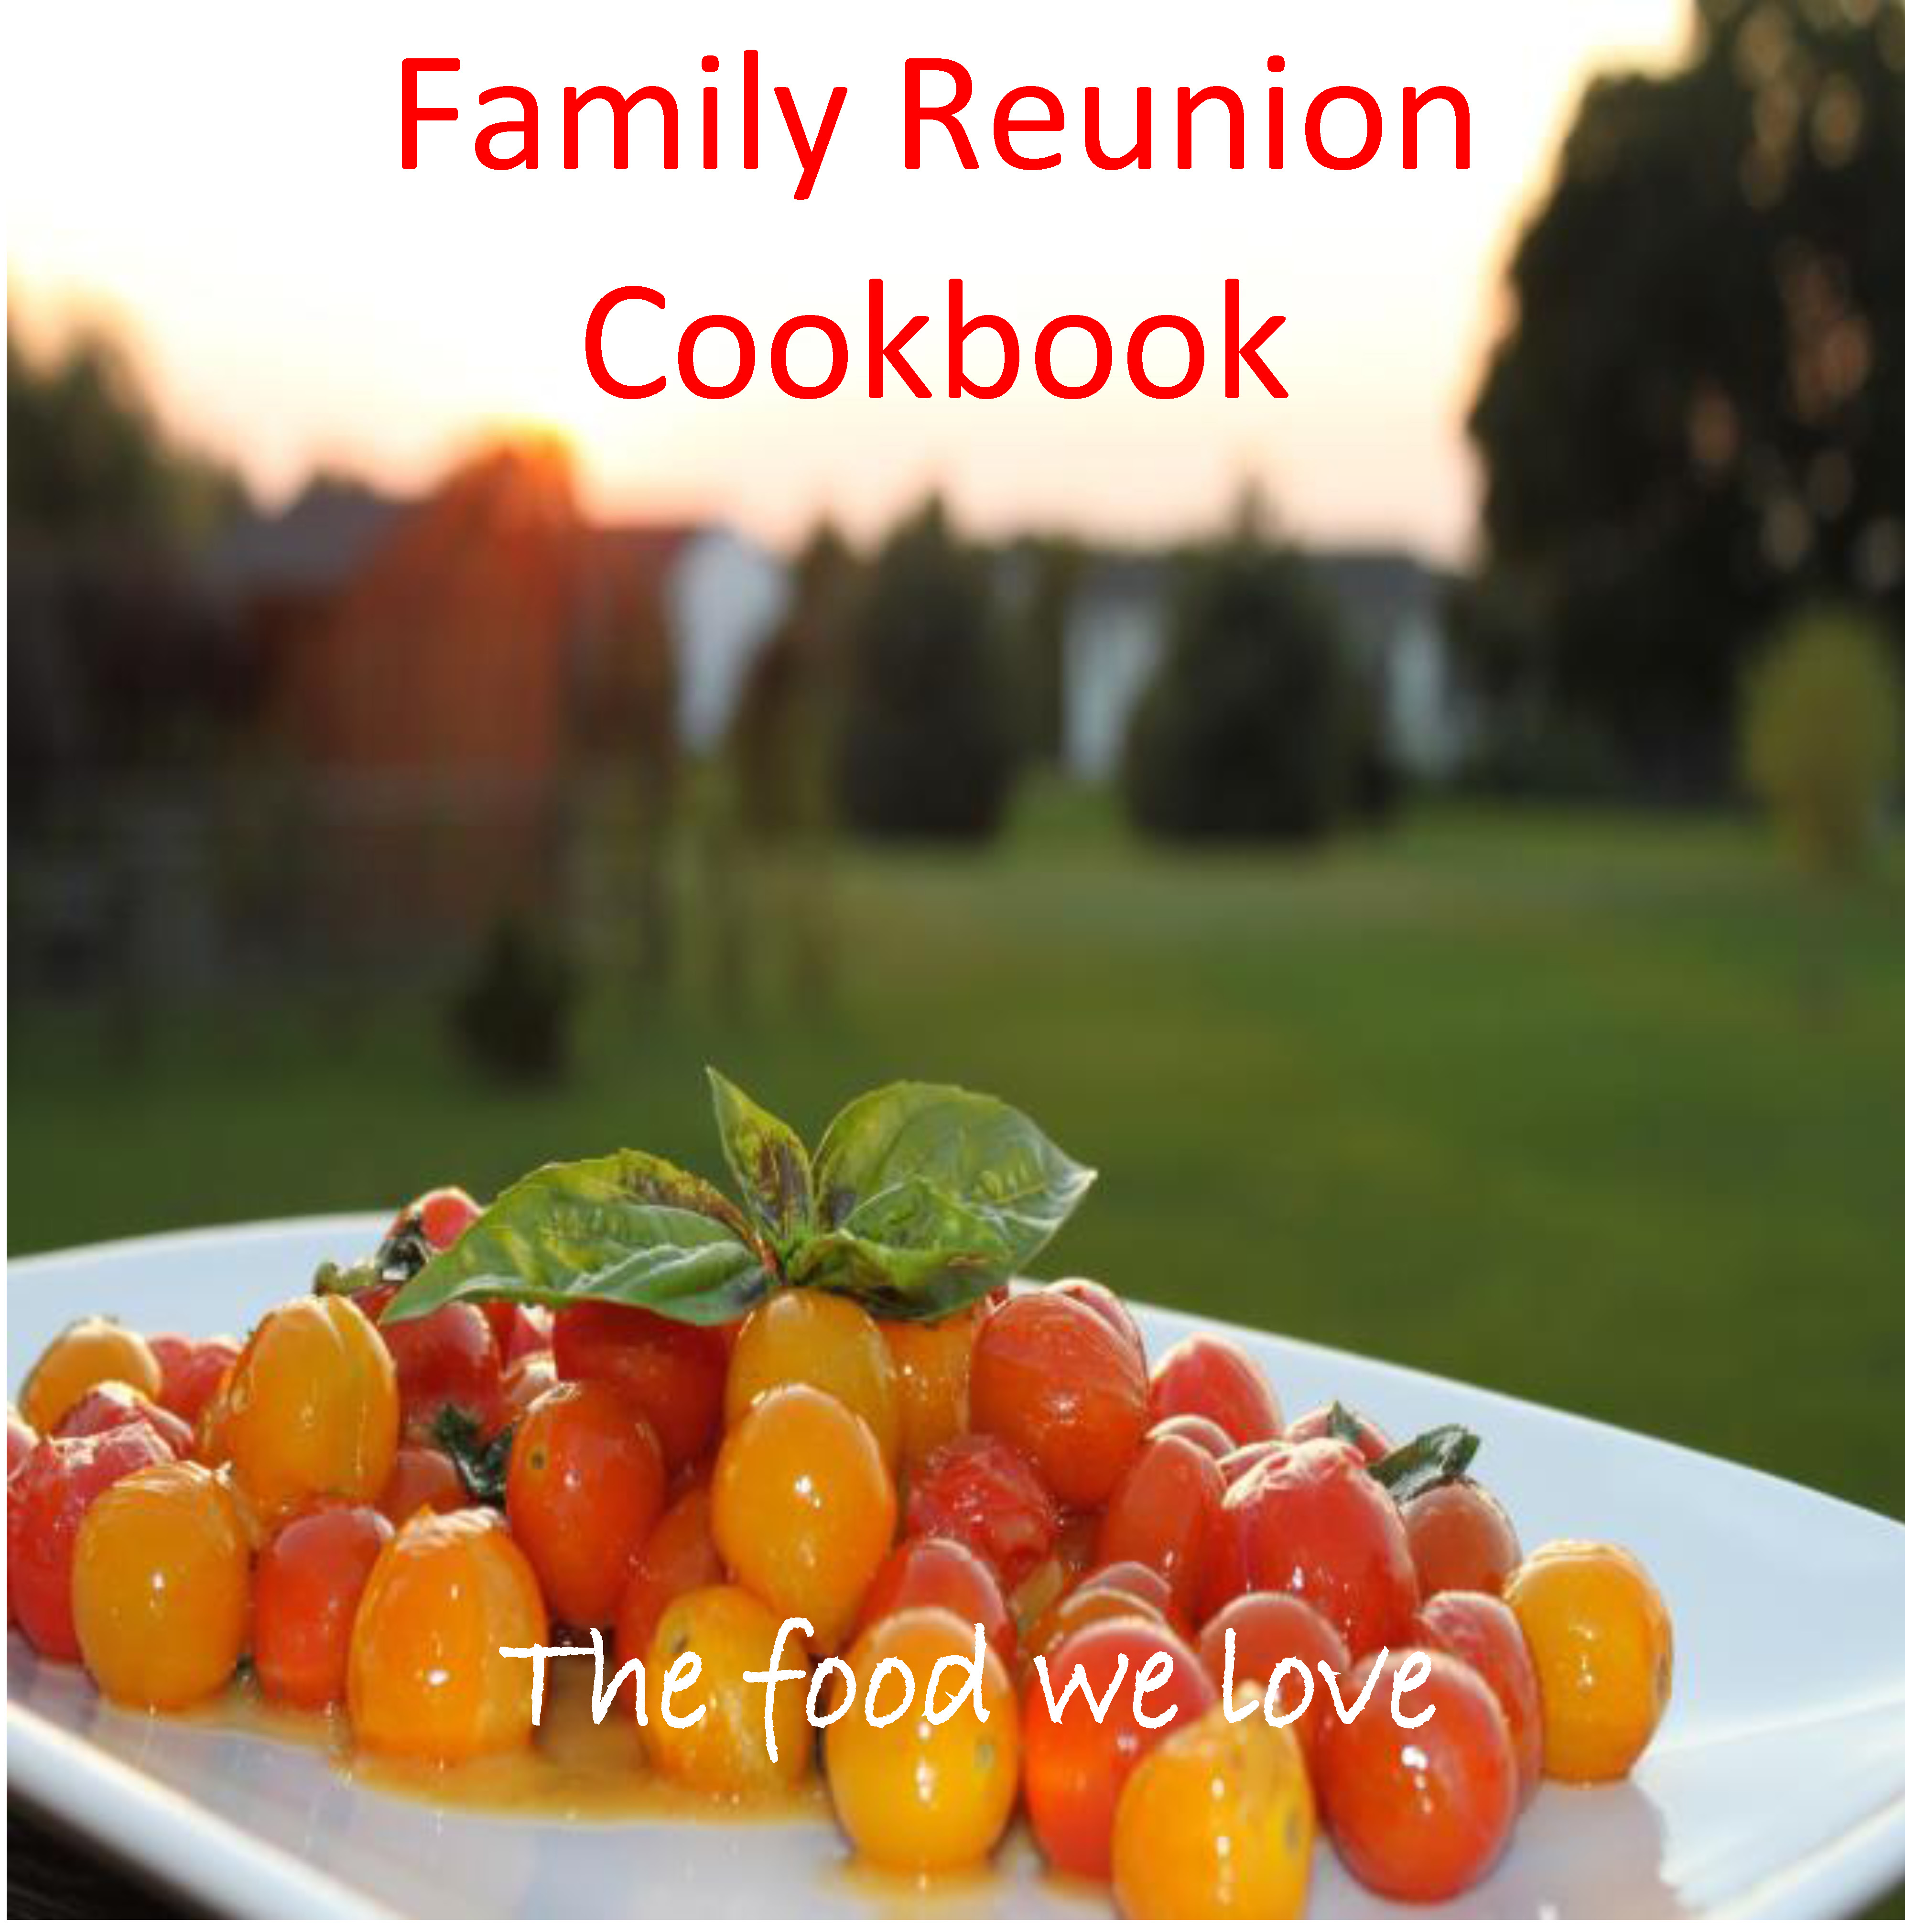 Family Cookbook – Family Reunion